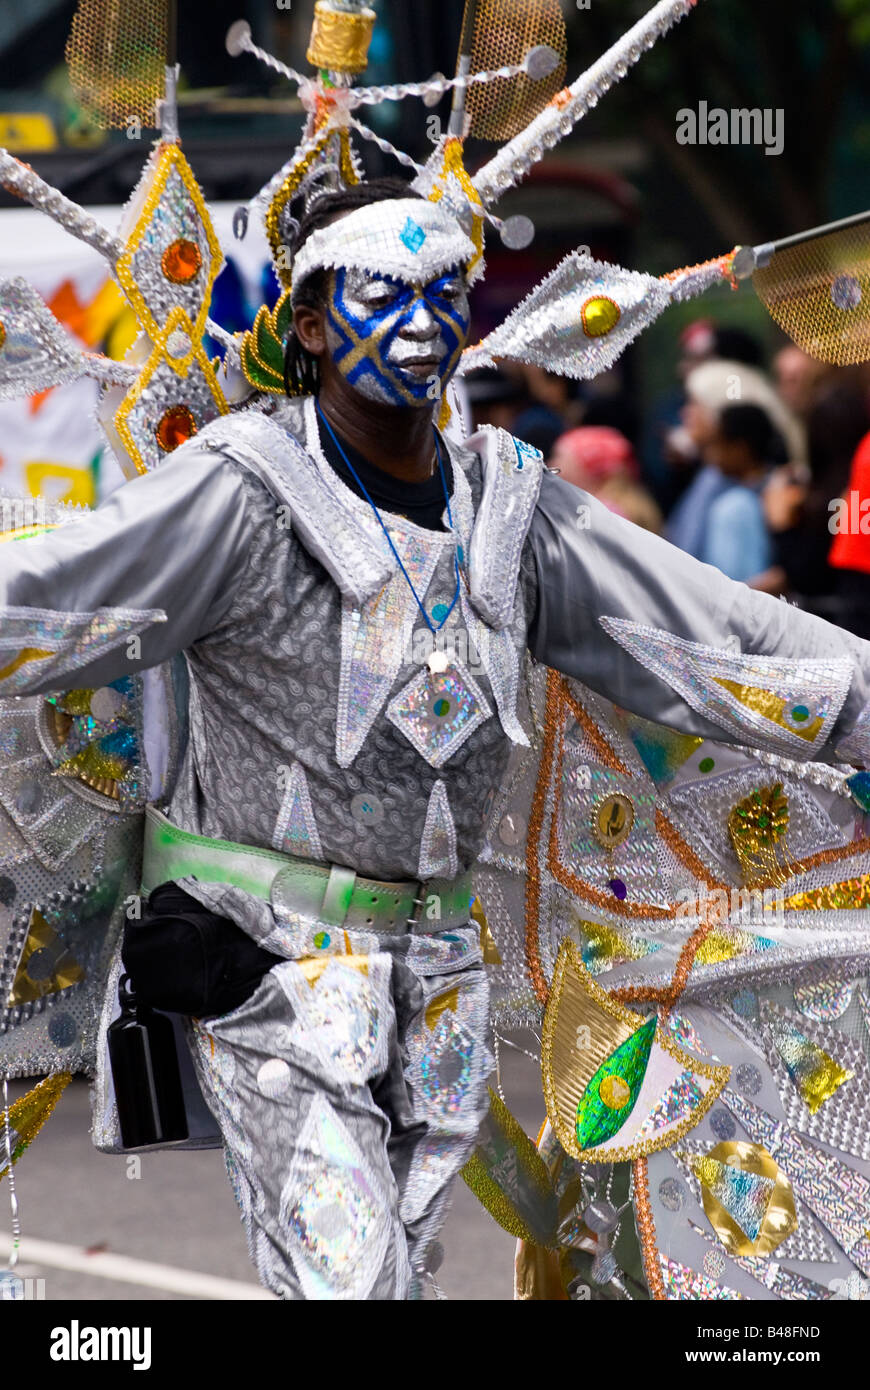 London , Notting Hill Carnival parade , handsome young black man with painted face & silver butterfly costume - Stock Image